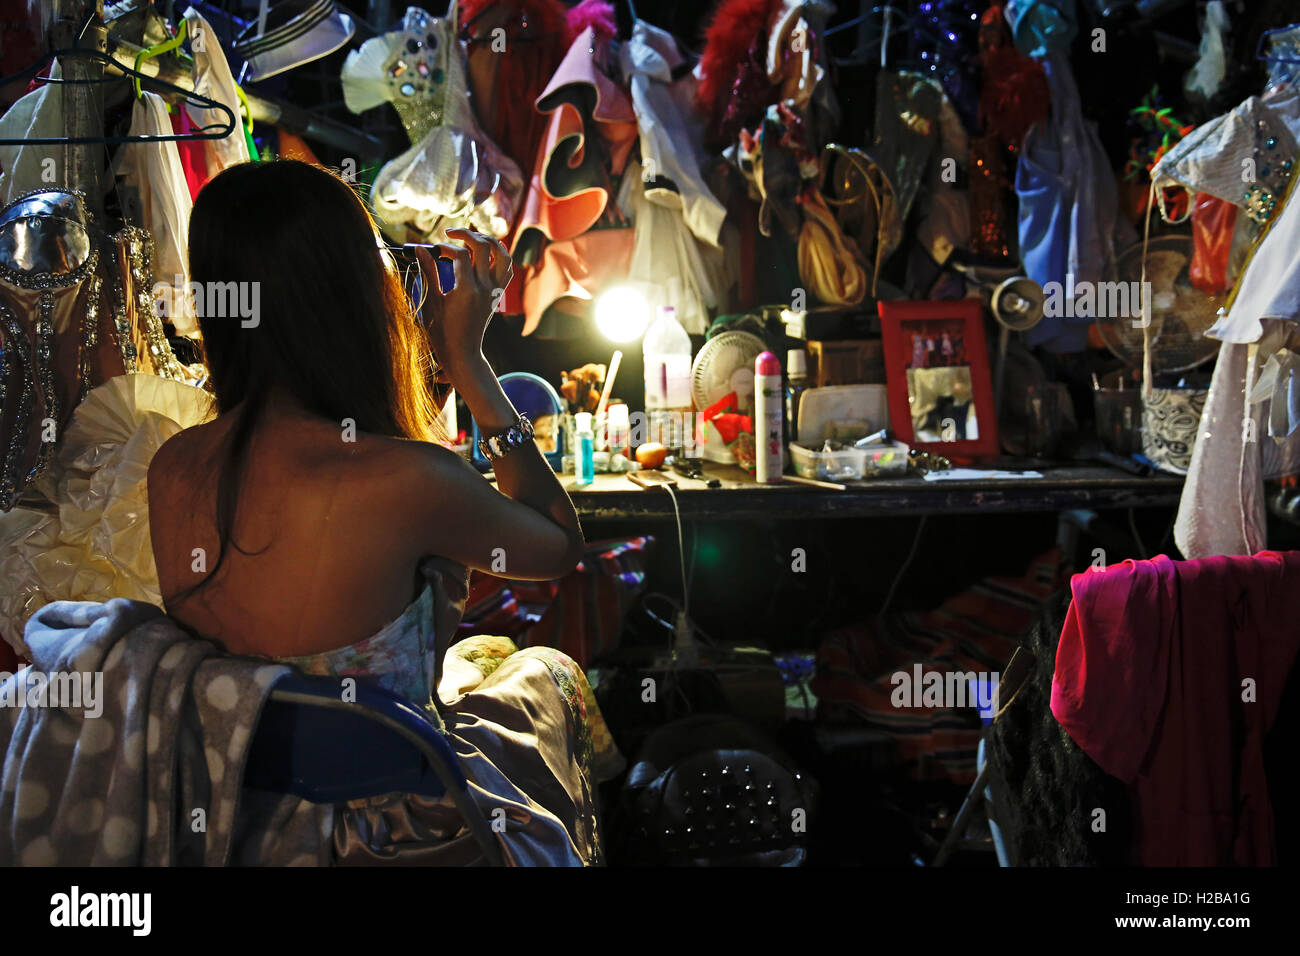 Performer Bombay prepares backstage before 'Lady Boys of Bangkok' stage show the 'Beauties and the Beats' - Stock Image